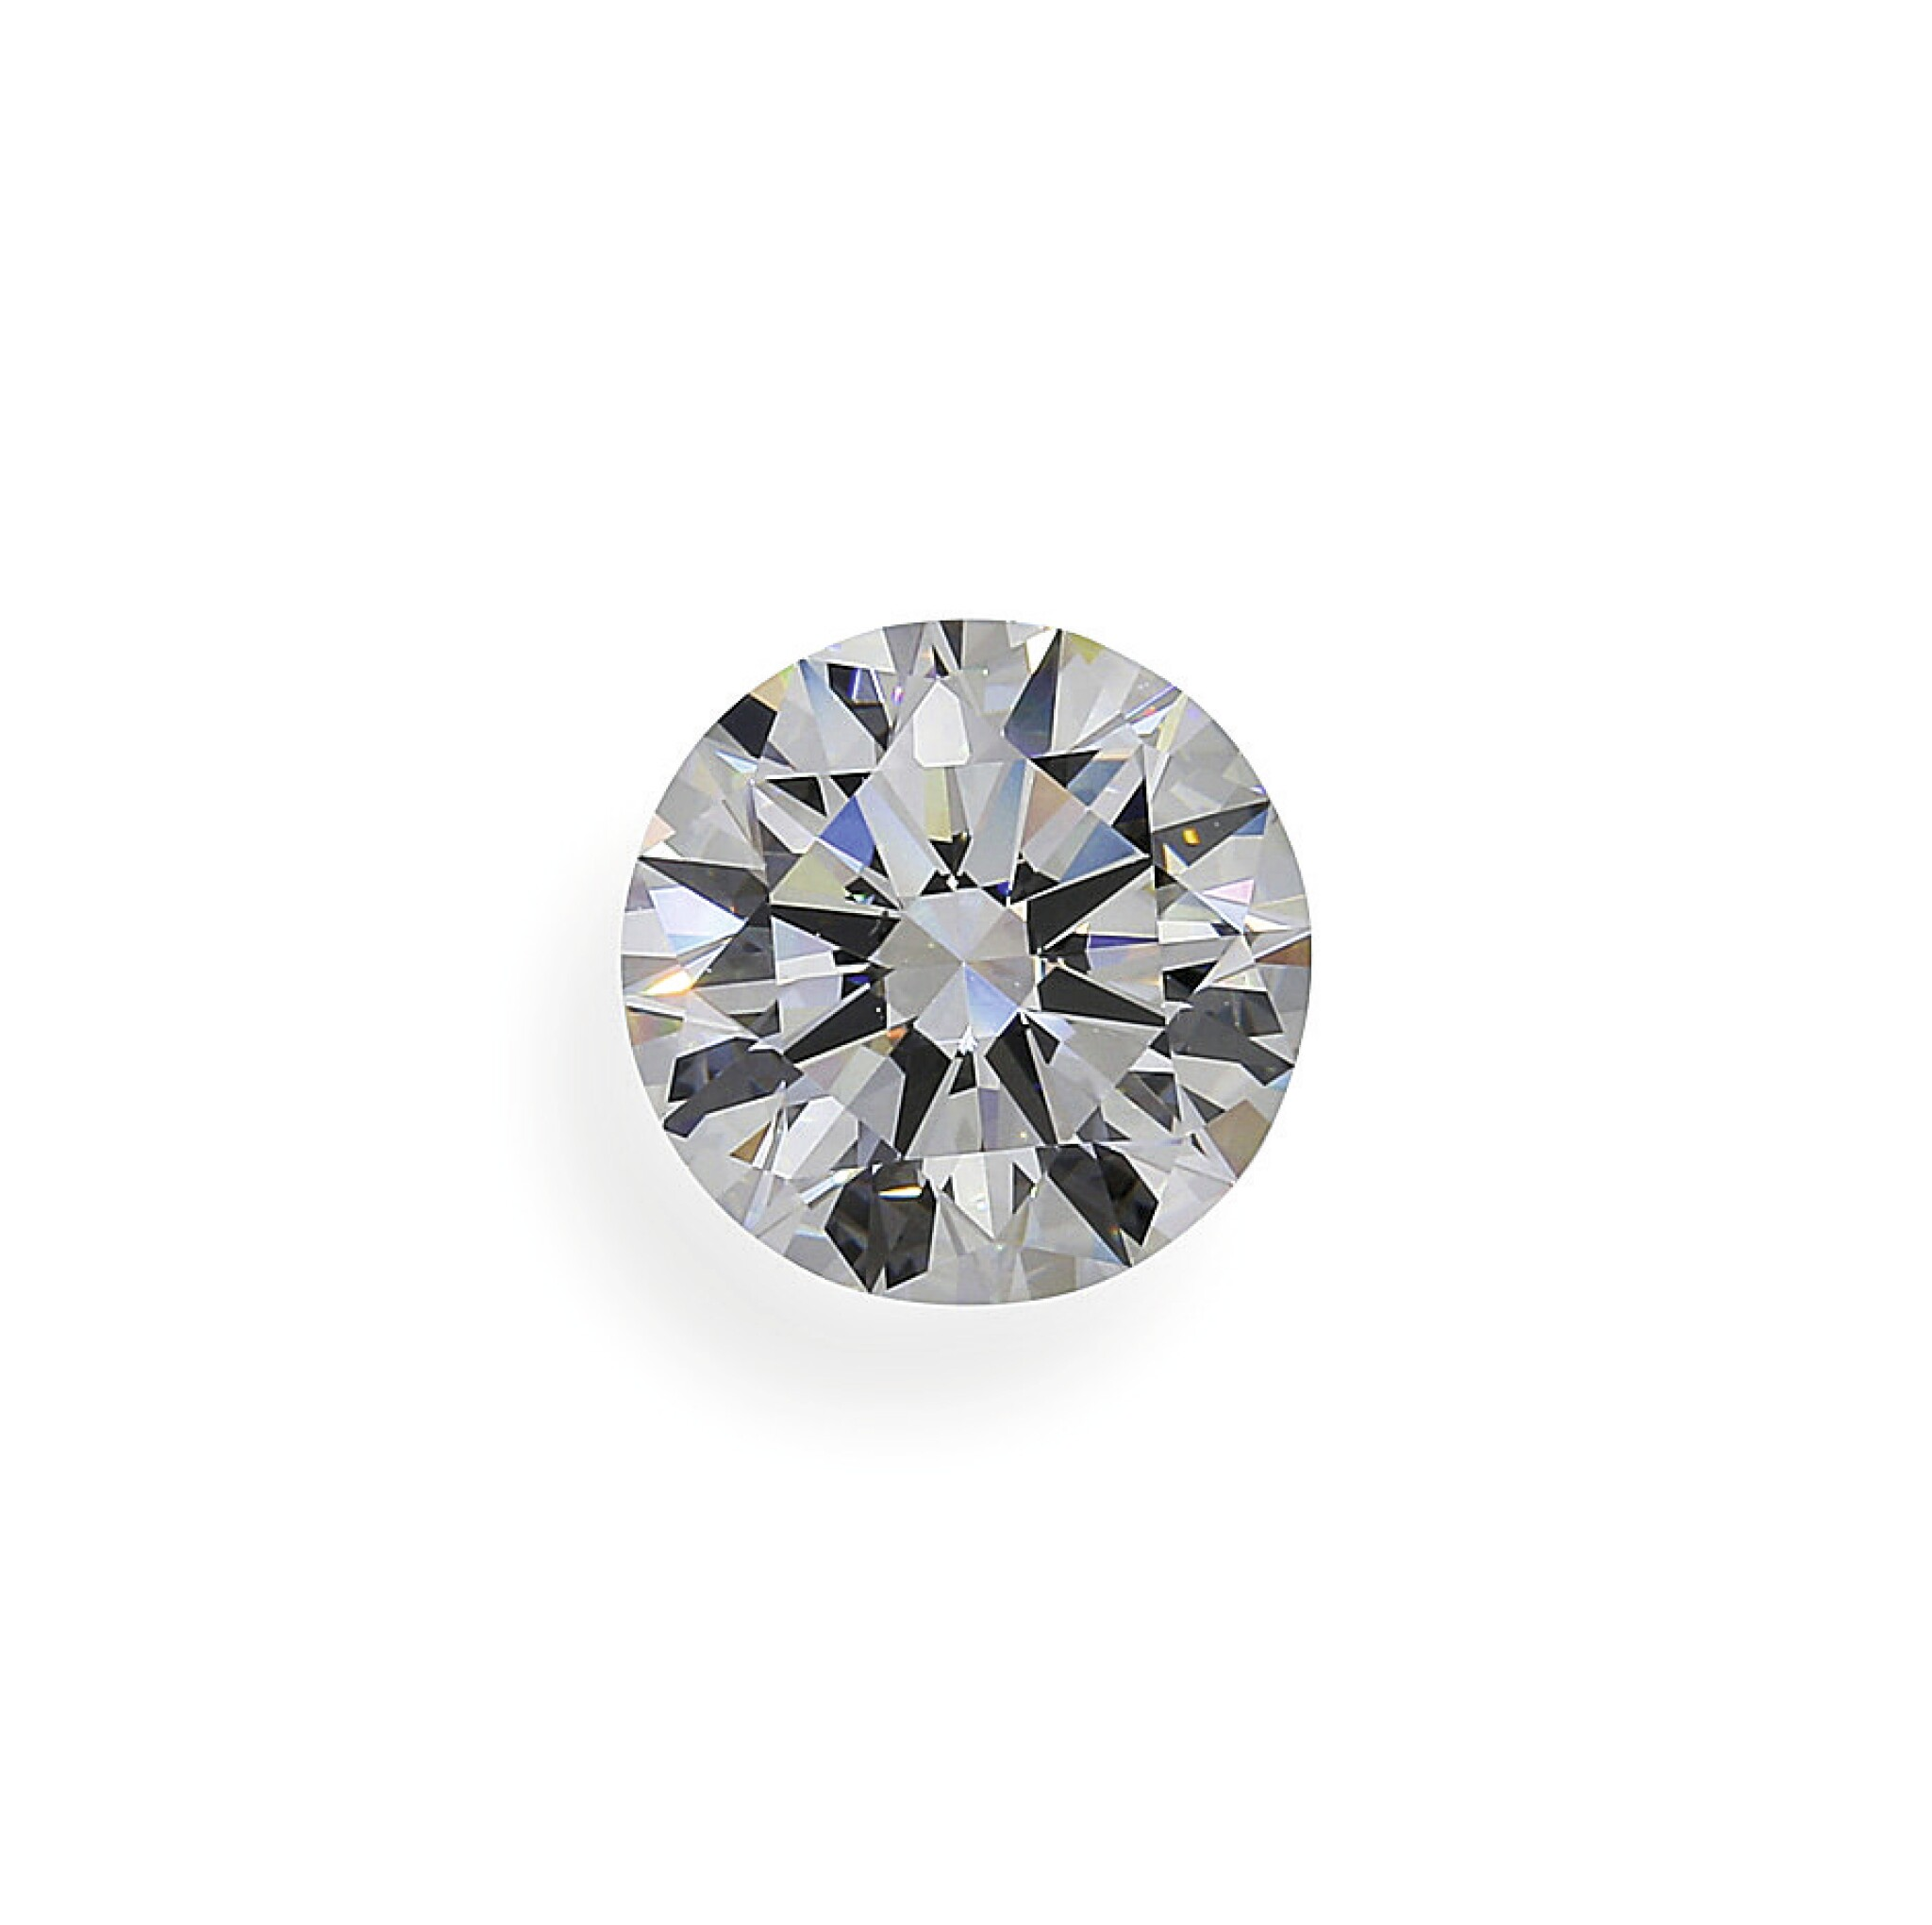 View full screen - View 1 of Lot 2. A 4.07 Carat Round Diamond, E Color, VS1 Clarity.